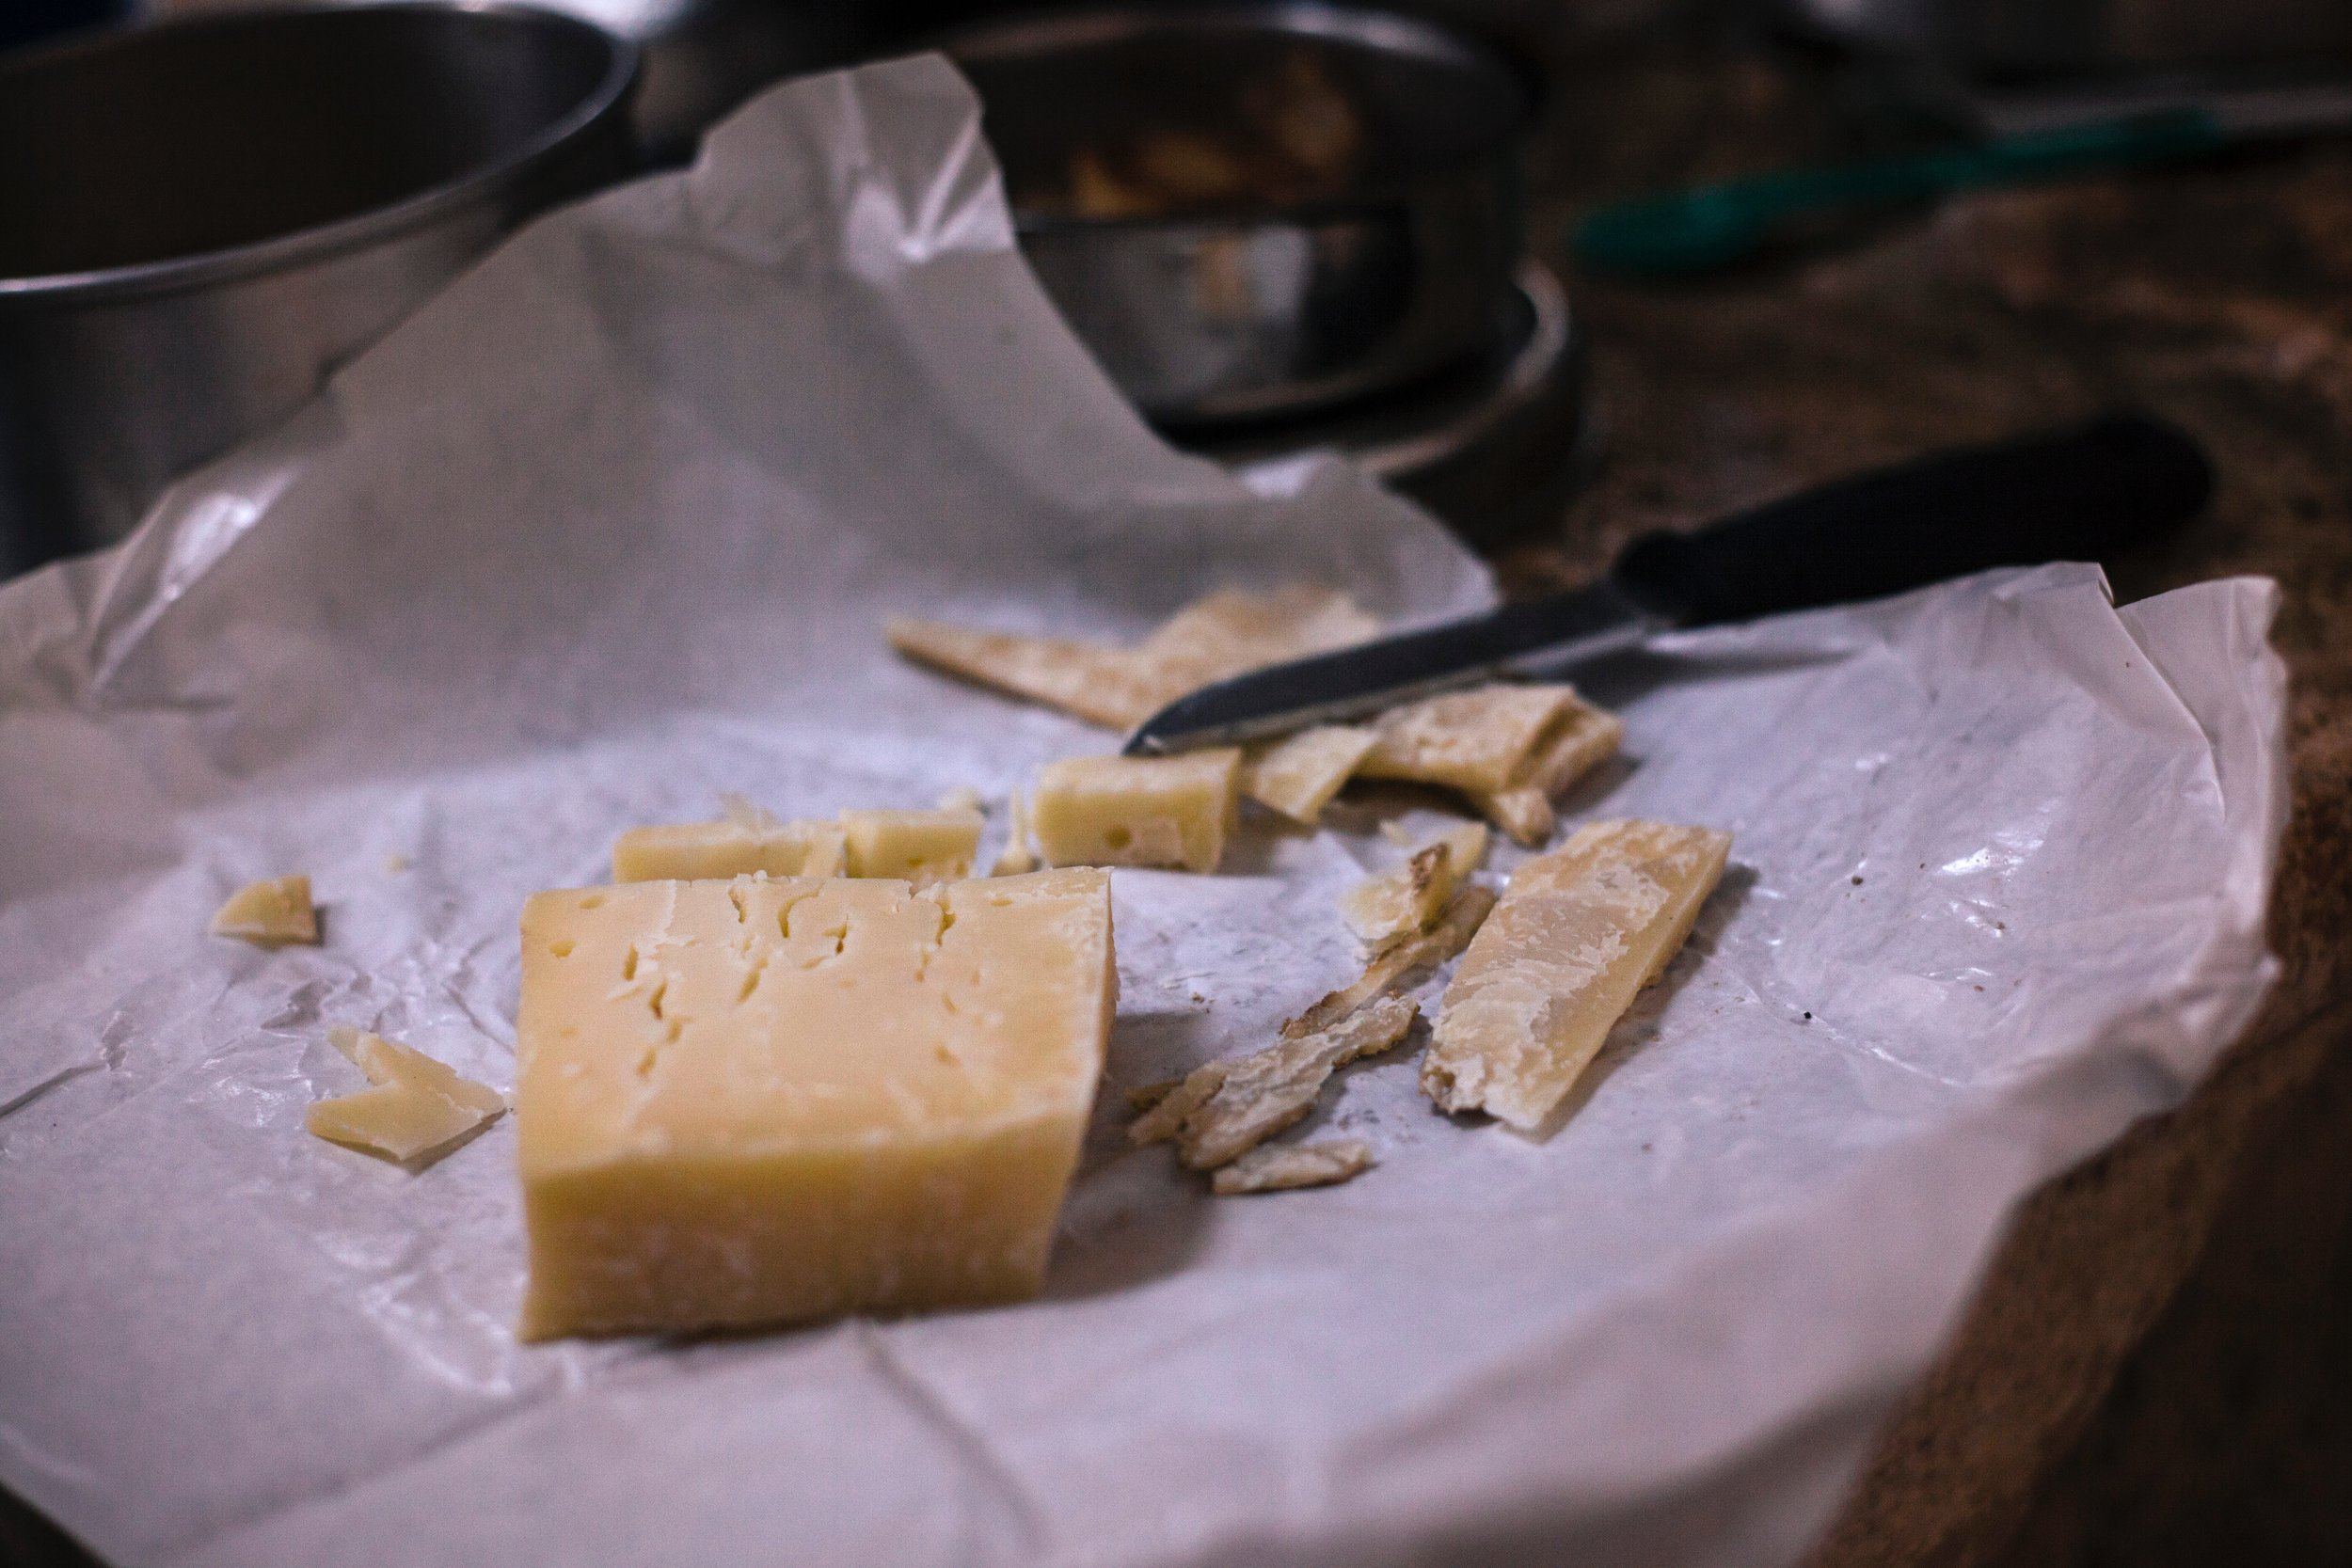 cheese-close-up-dairy-product-793129.jpg